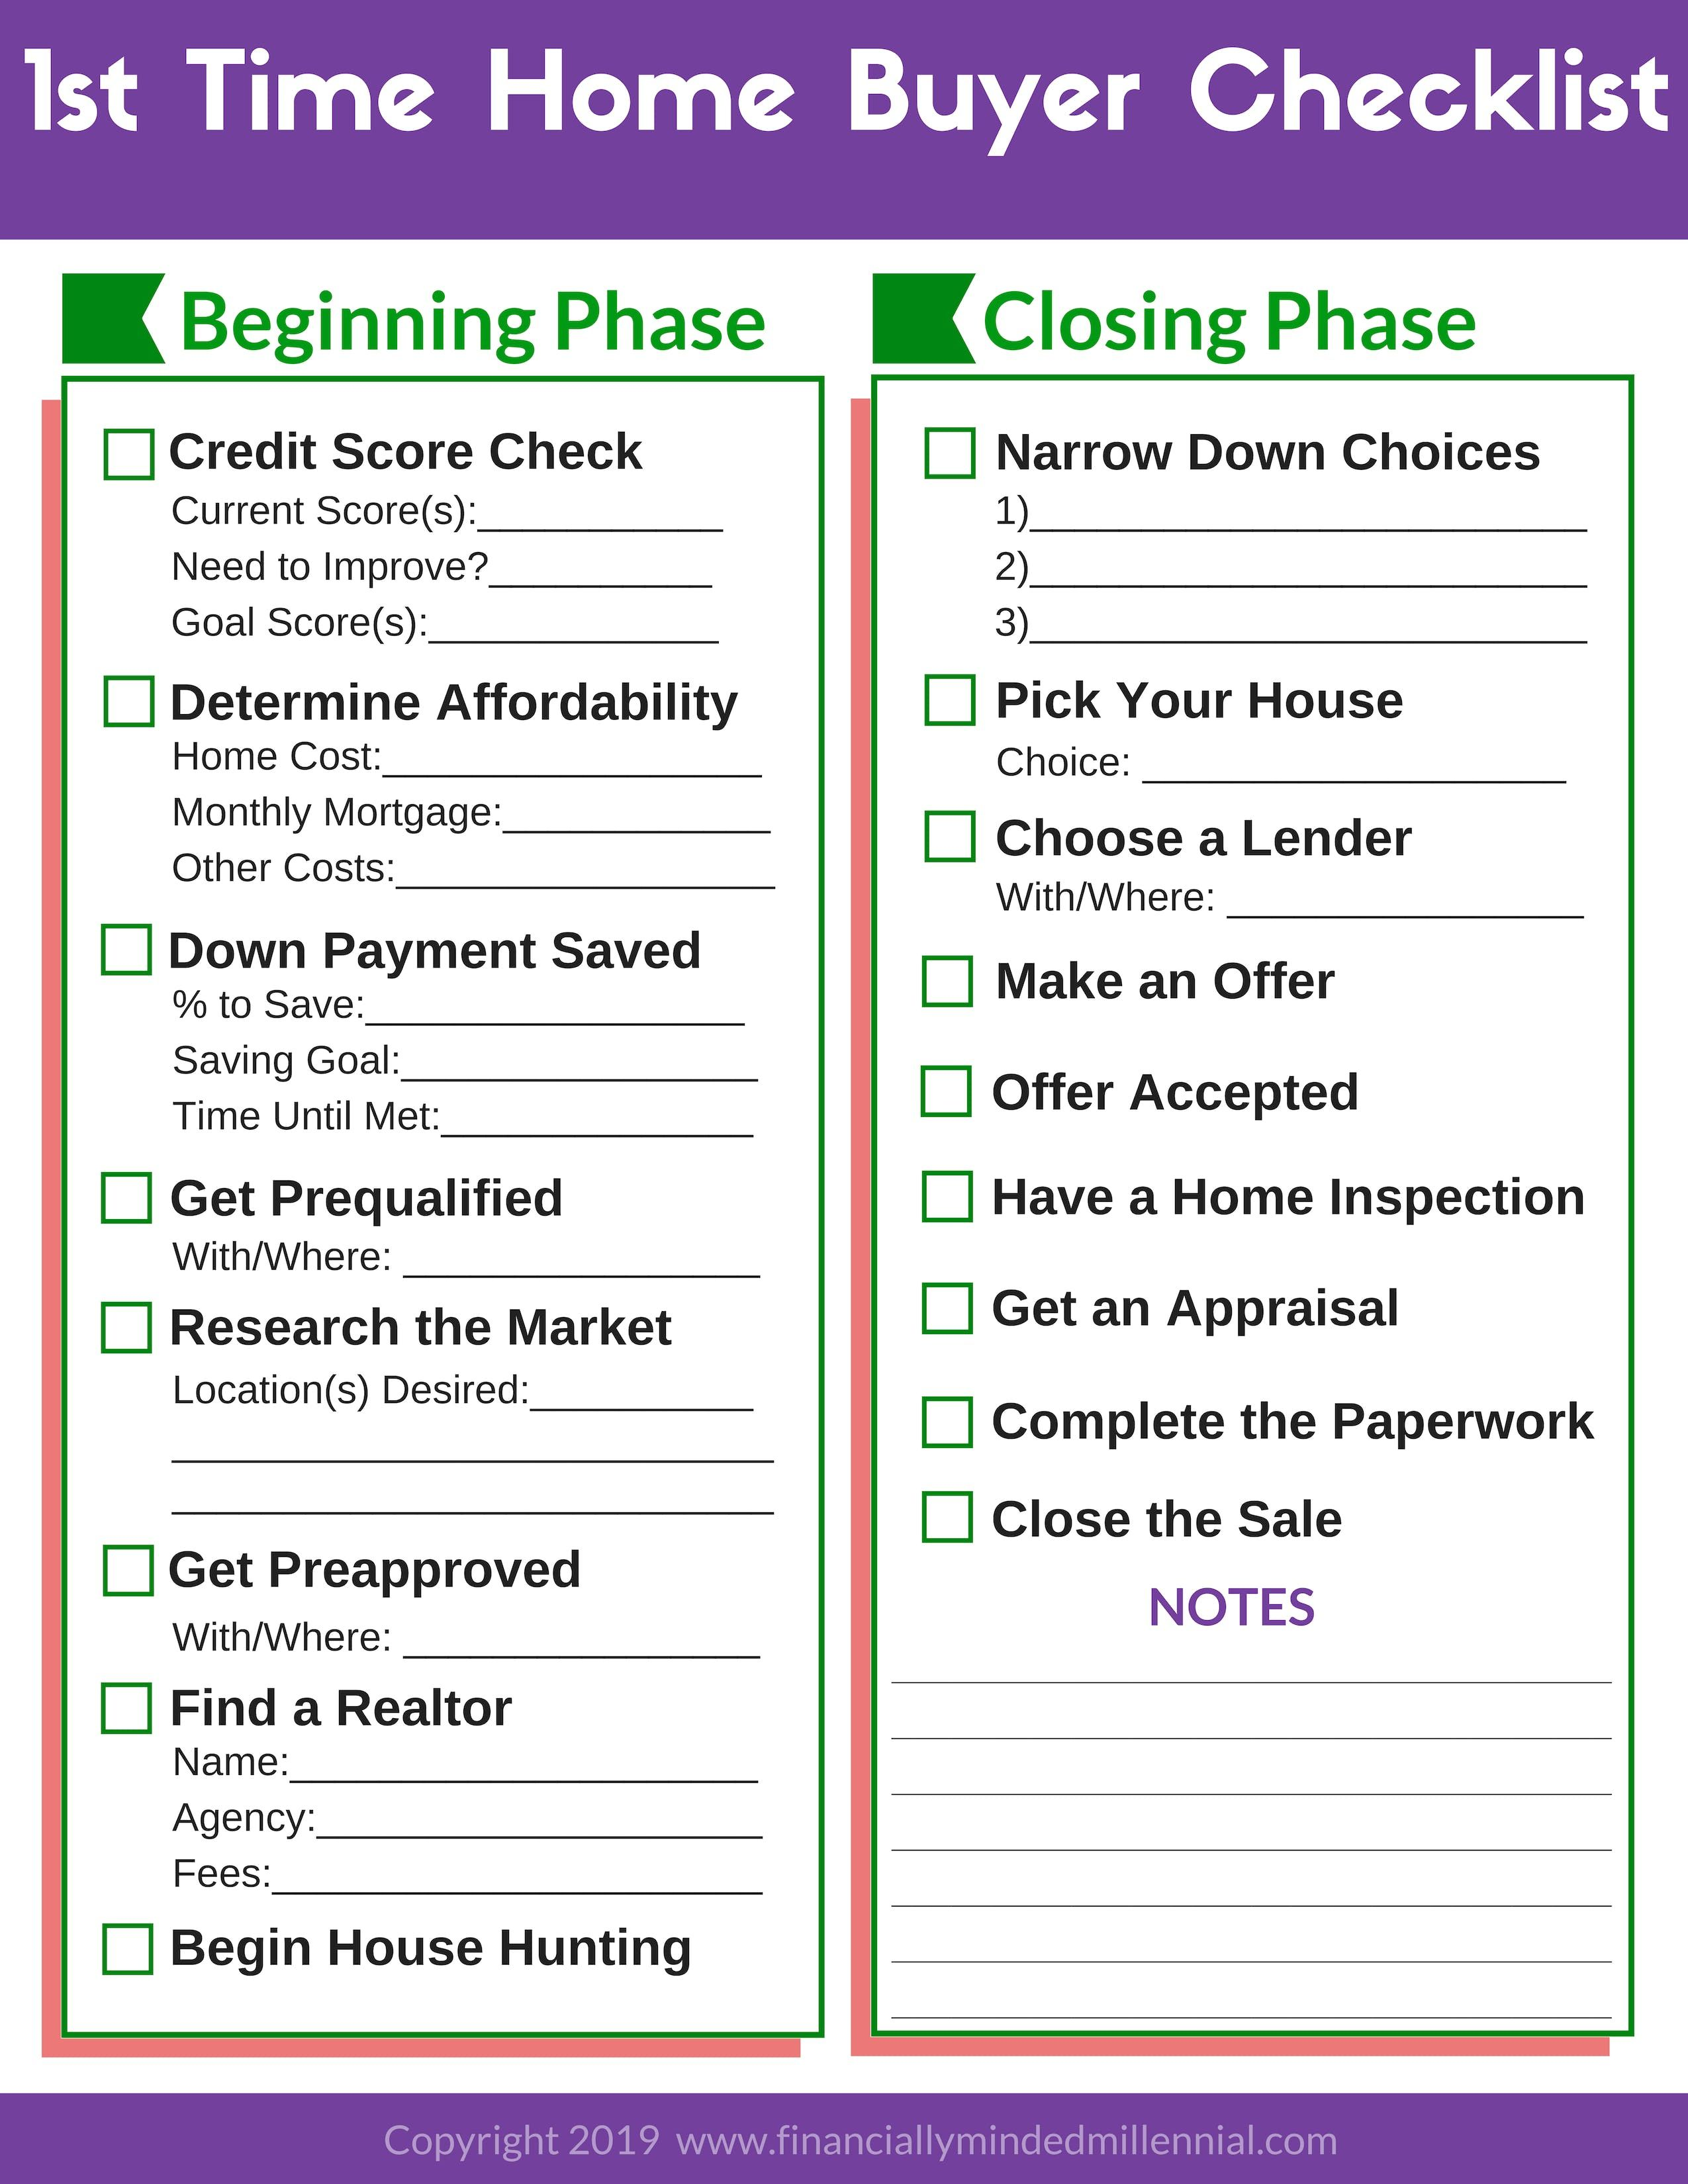 Free Printable Checklist For 1st Time Home Buyers 17 Critical Steps In 2020 Buying First Home Home Buying Checklist First Home Checklist